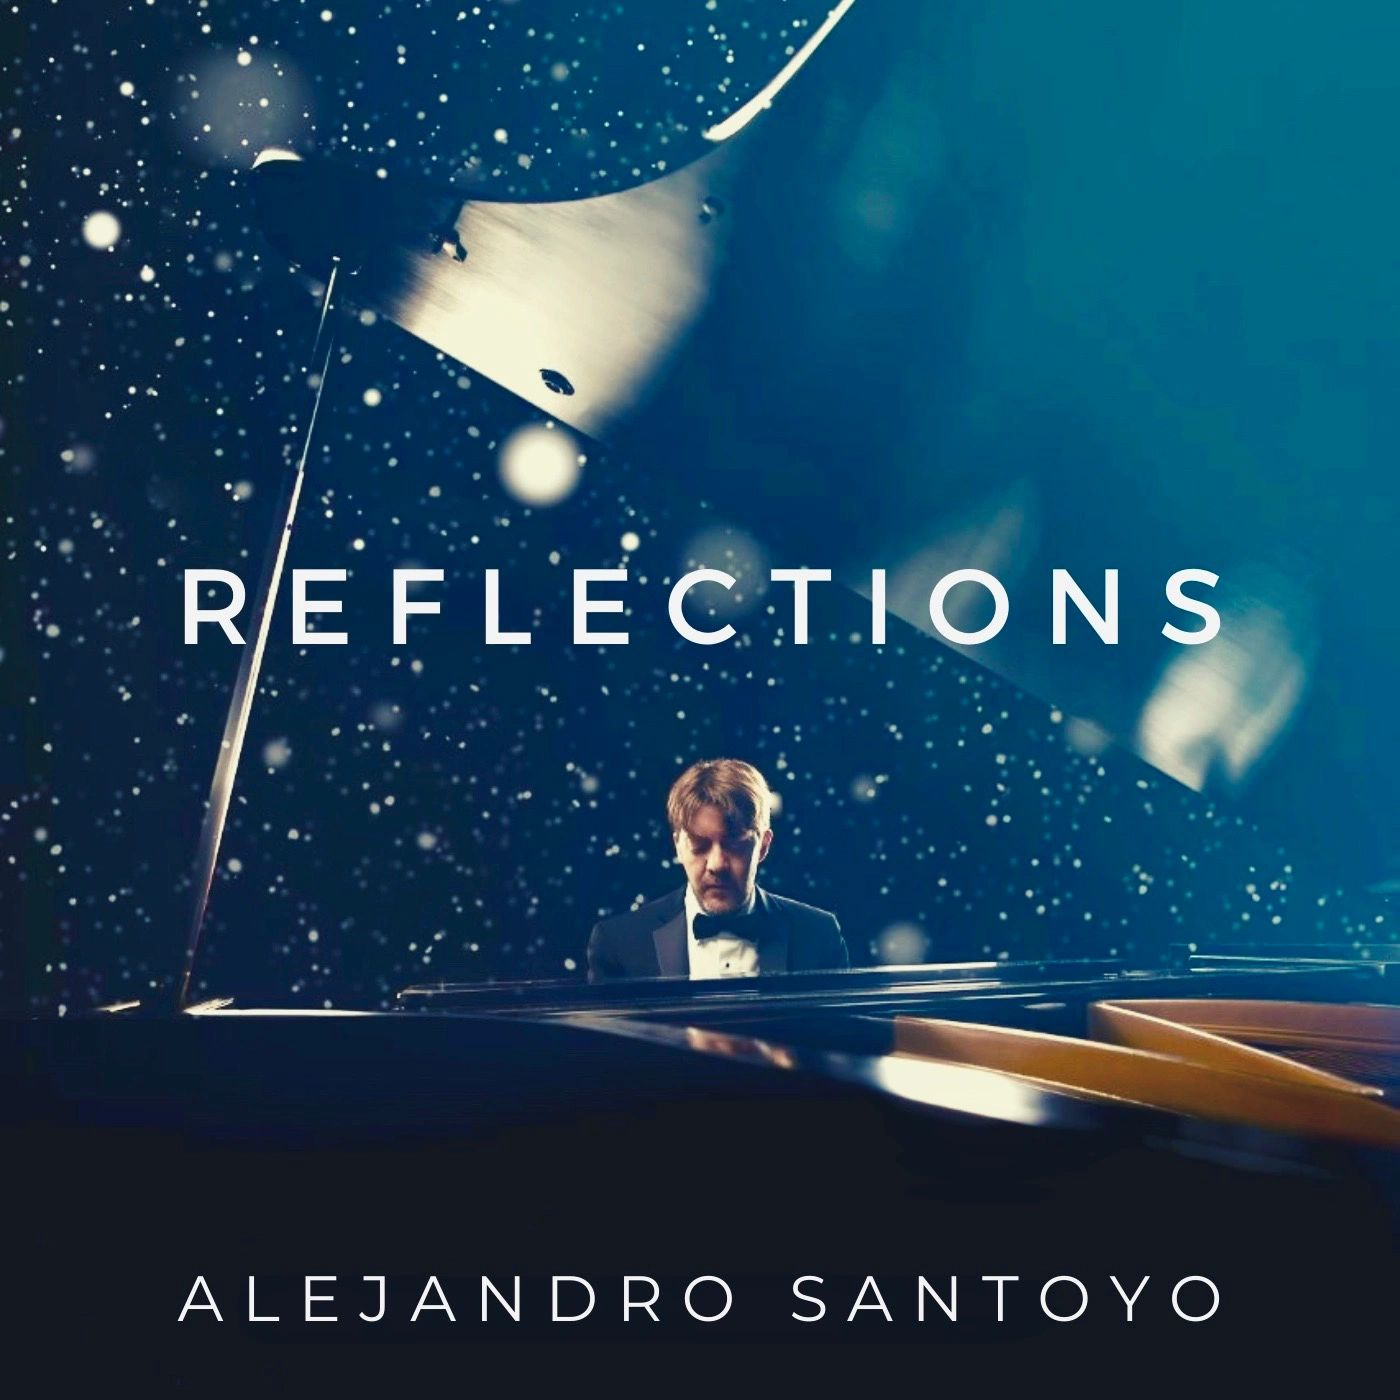 You can puchase Alejandro Santoyo's new Album here: